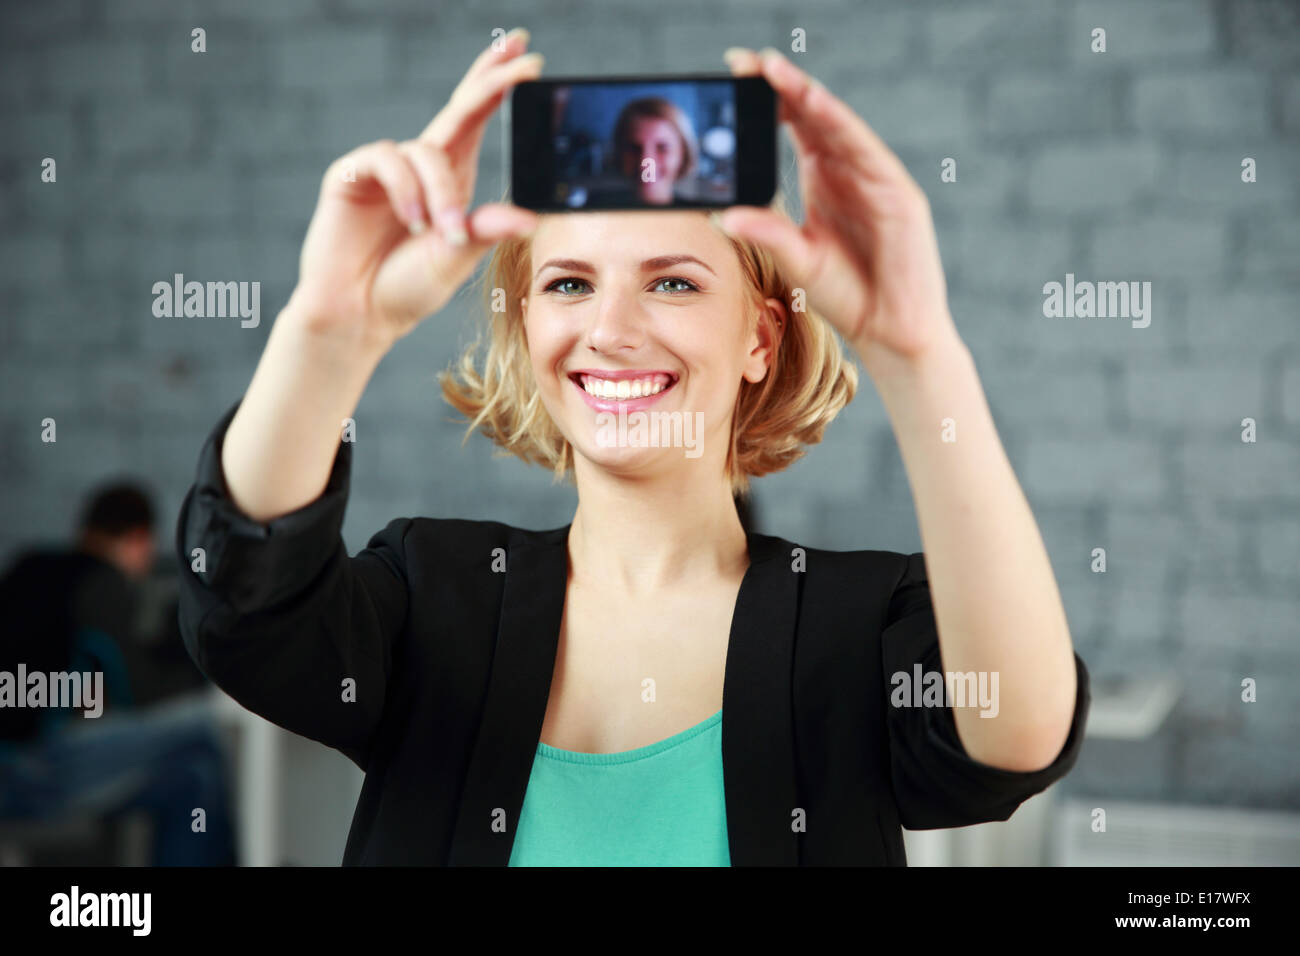 Young happy woman making a self photo by her smartphone in office - Stock Image